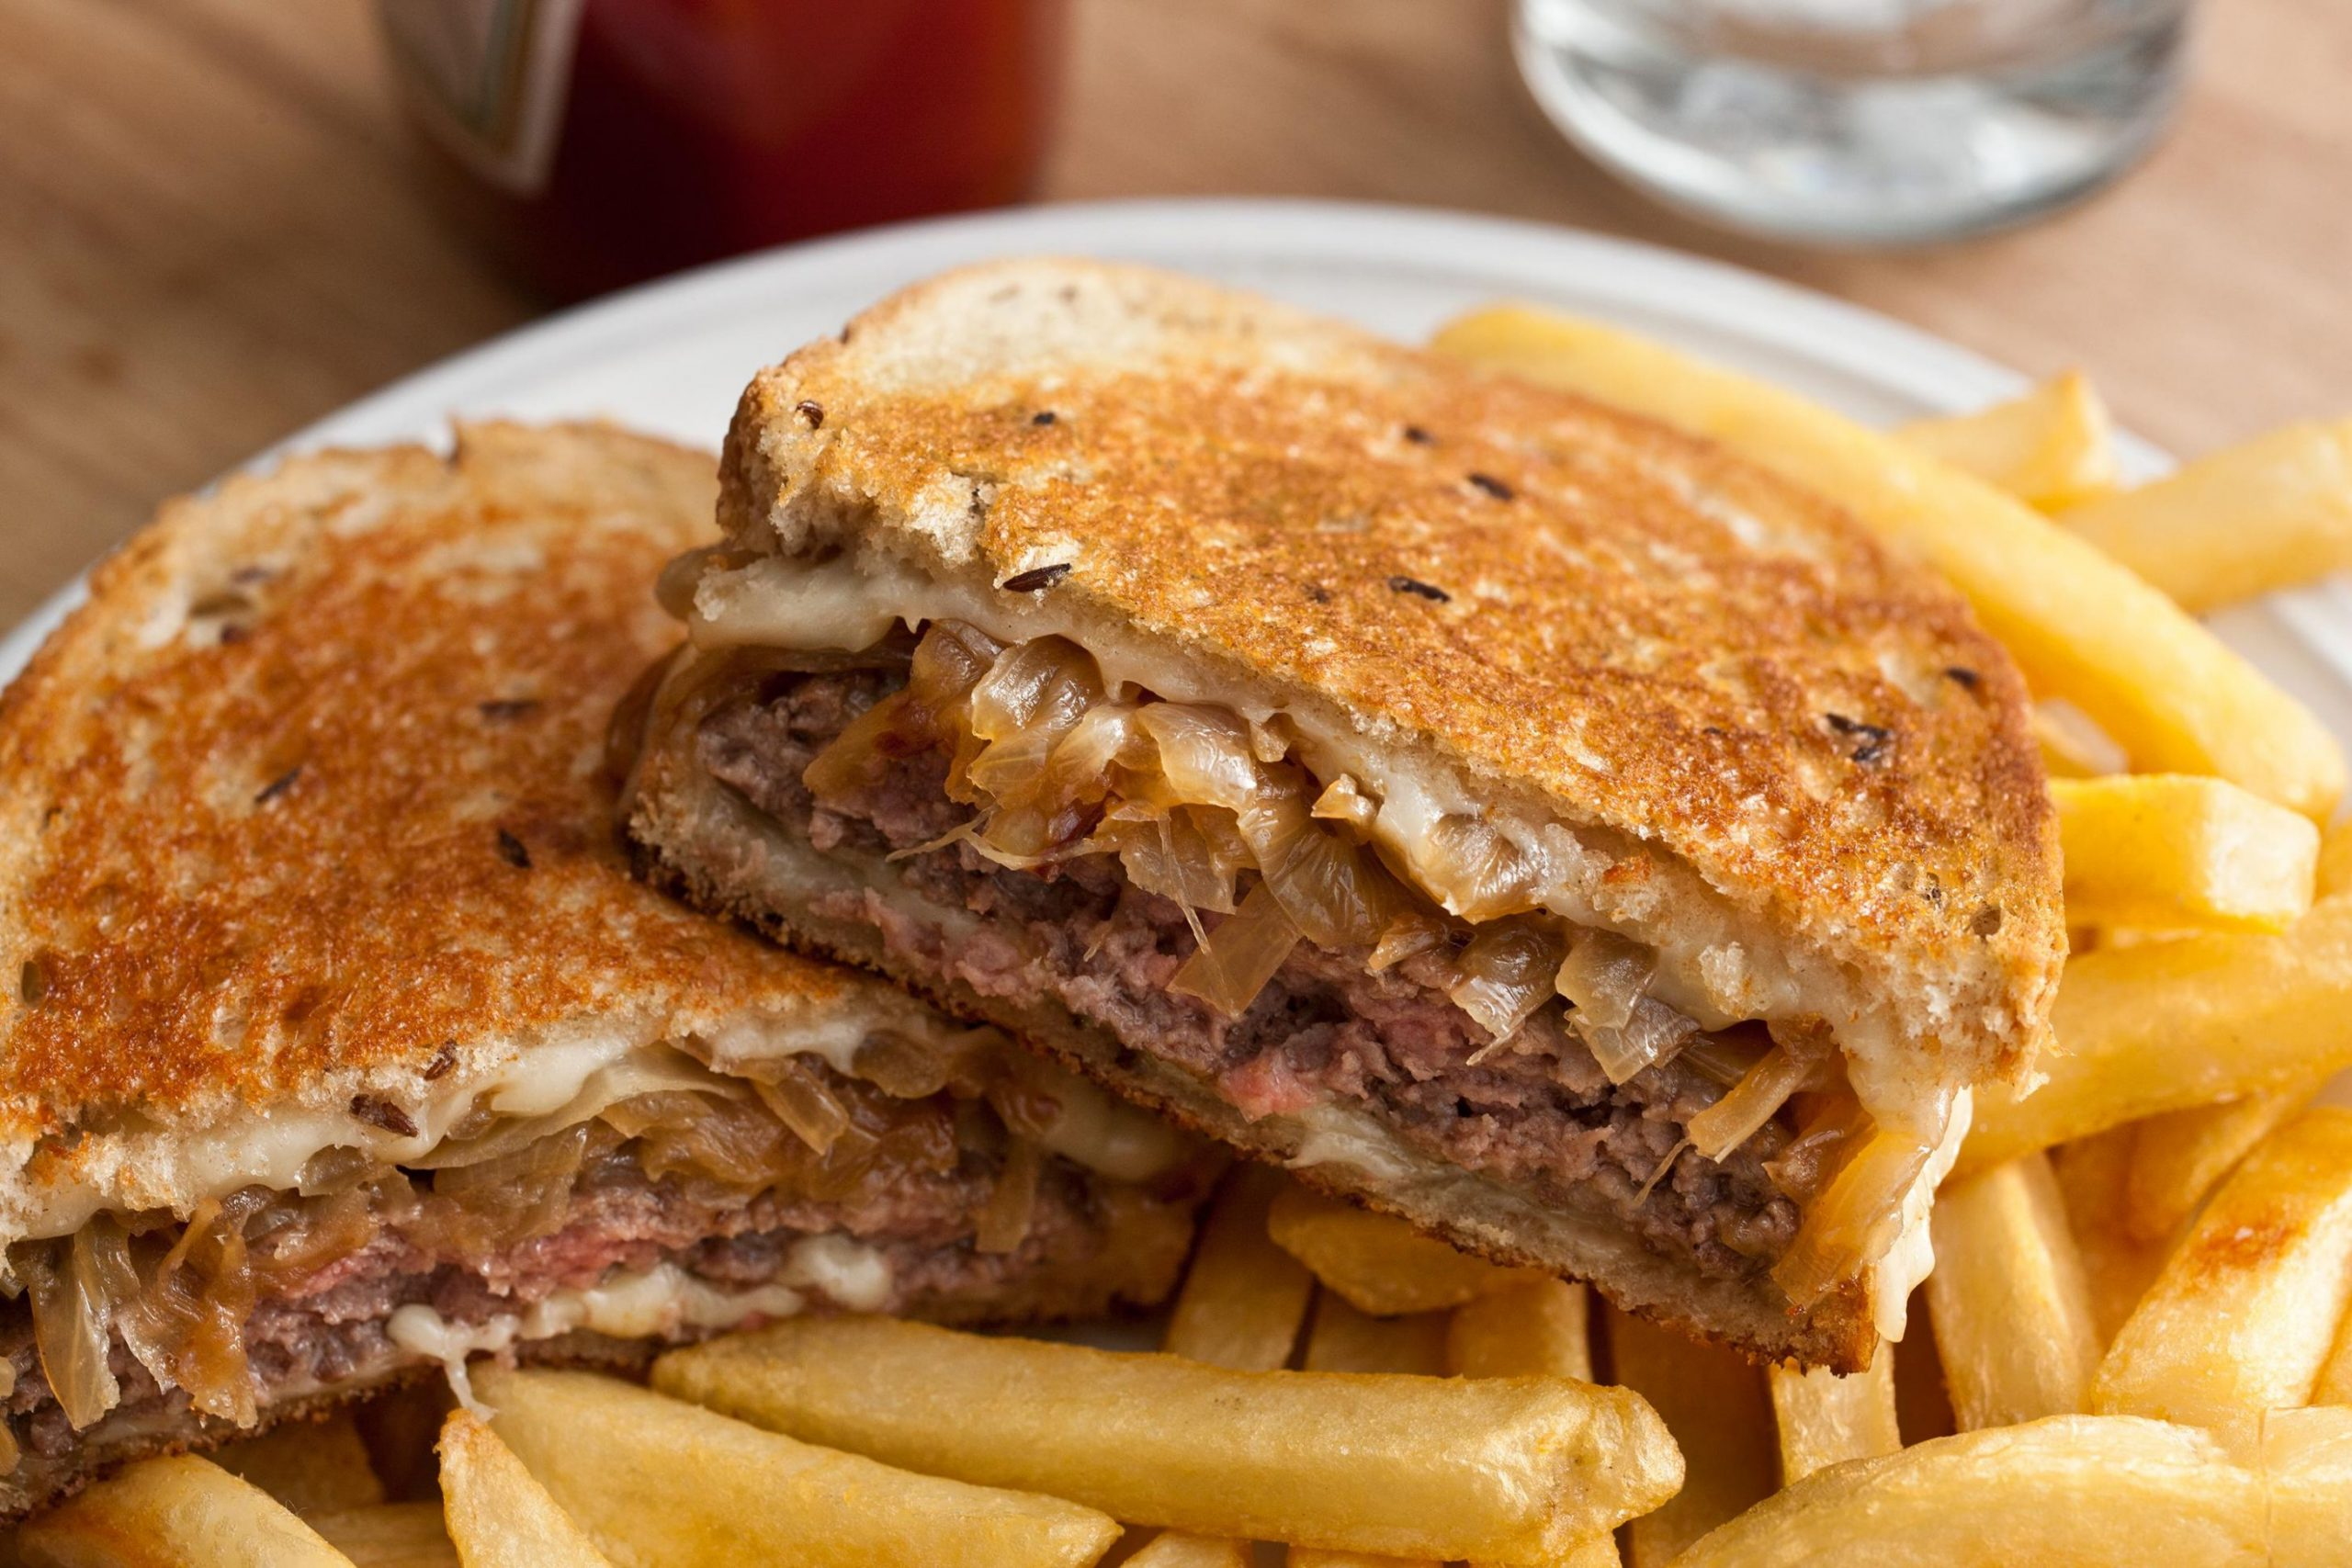 Warm Grilled Sandwich Recipes - Pictures - Chowhound